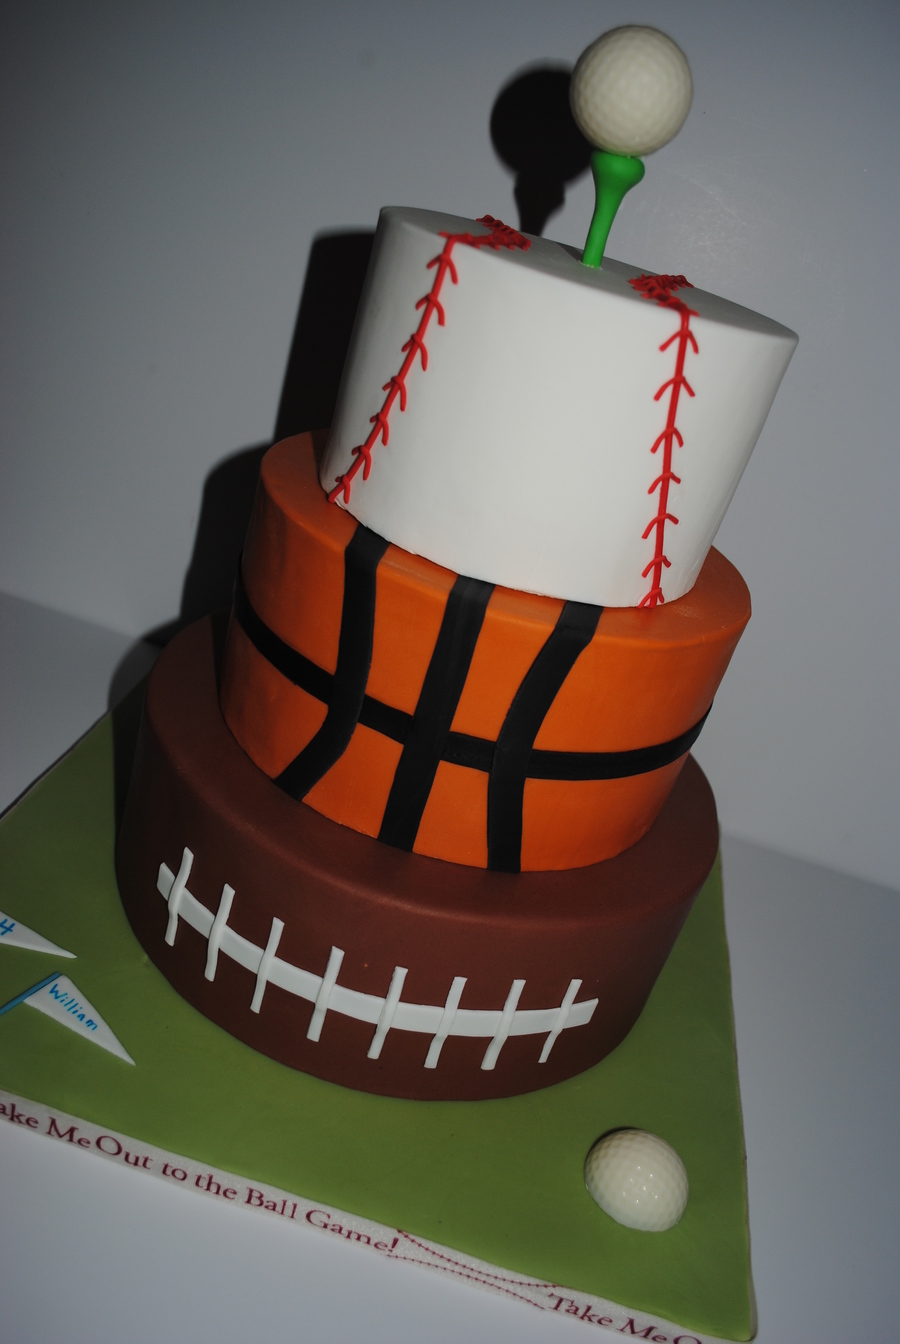 Tremendous Sports Themed Birthday Cake Cakecentral Com Funny Birthday Cards Online Alyptdamsfinfo